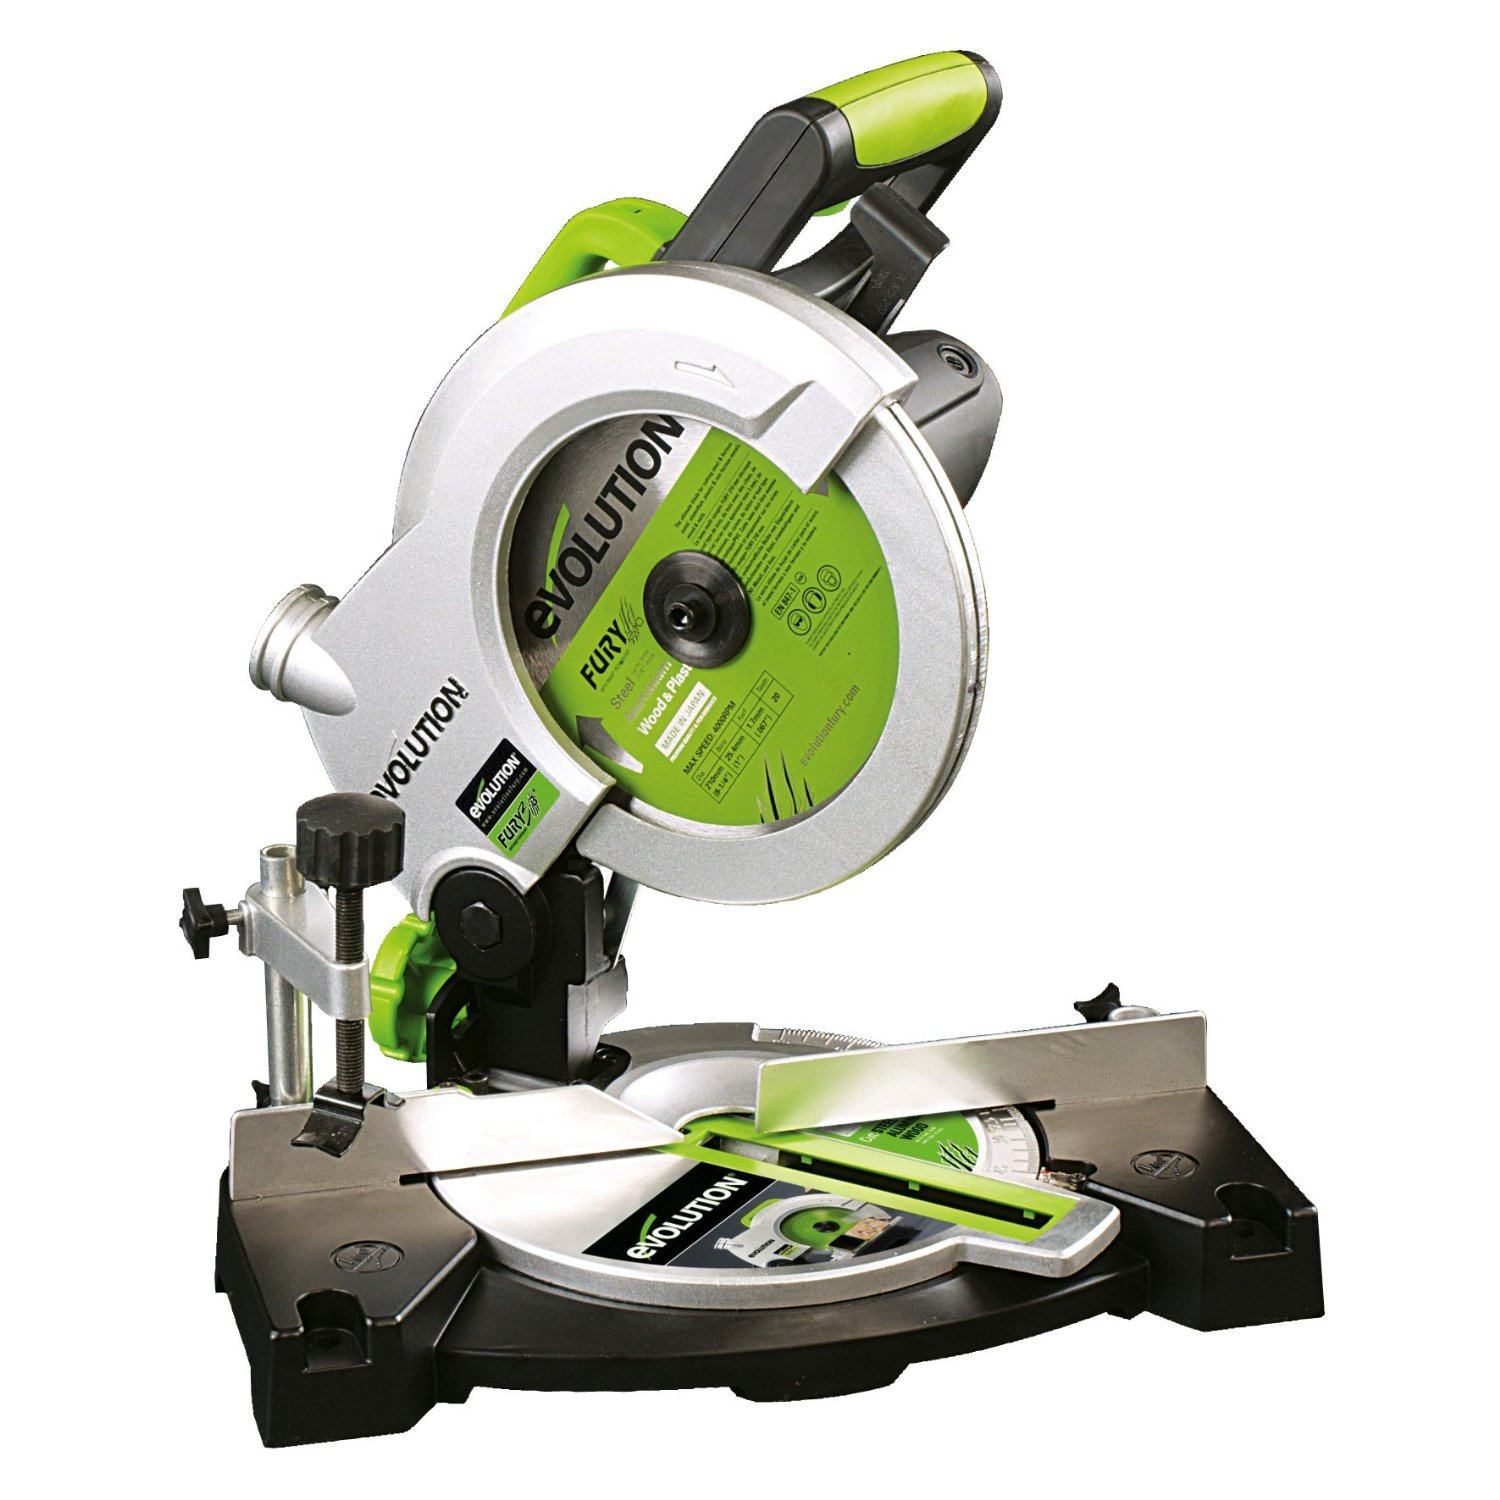 Evolution FURY3-B 210mm Multipurpose Compound Mitre Saw